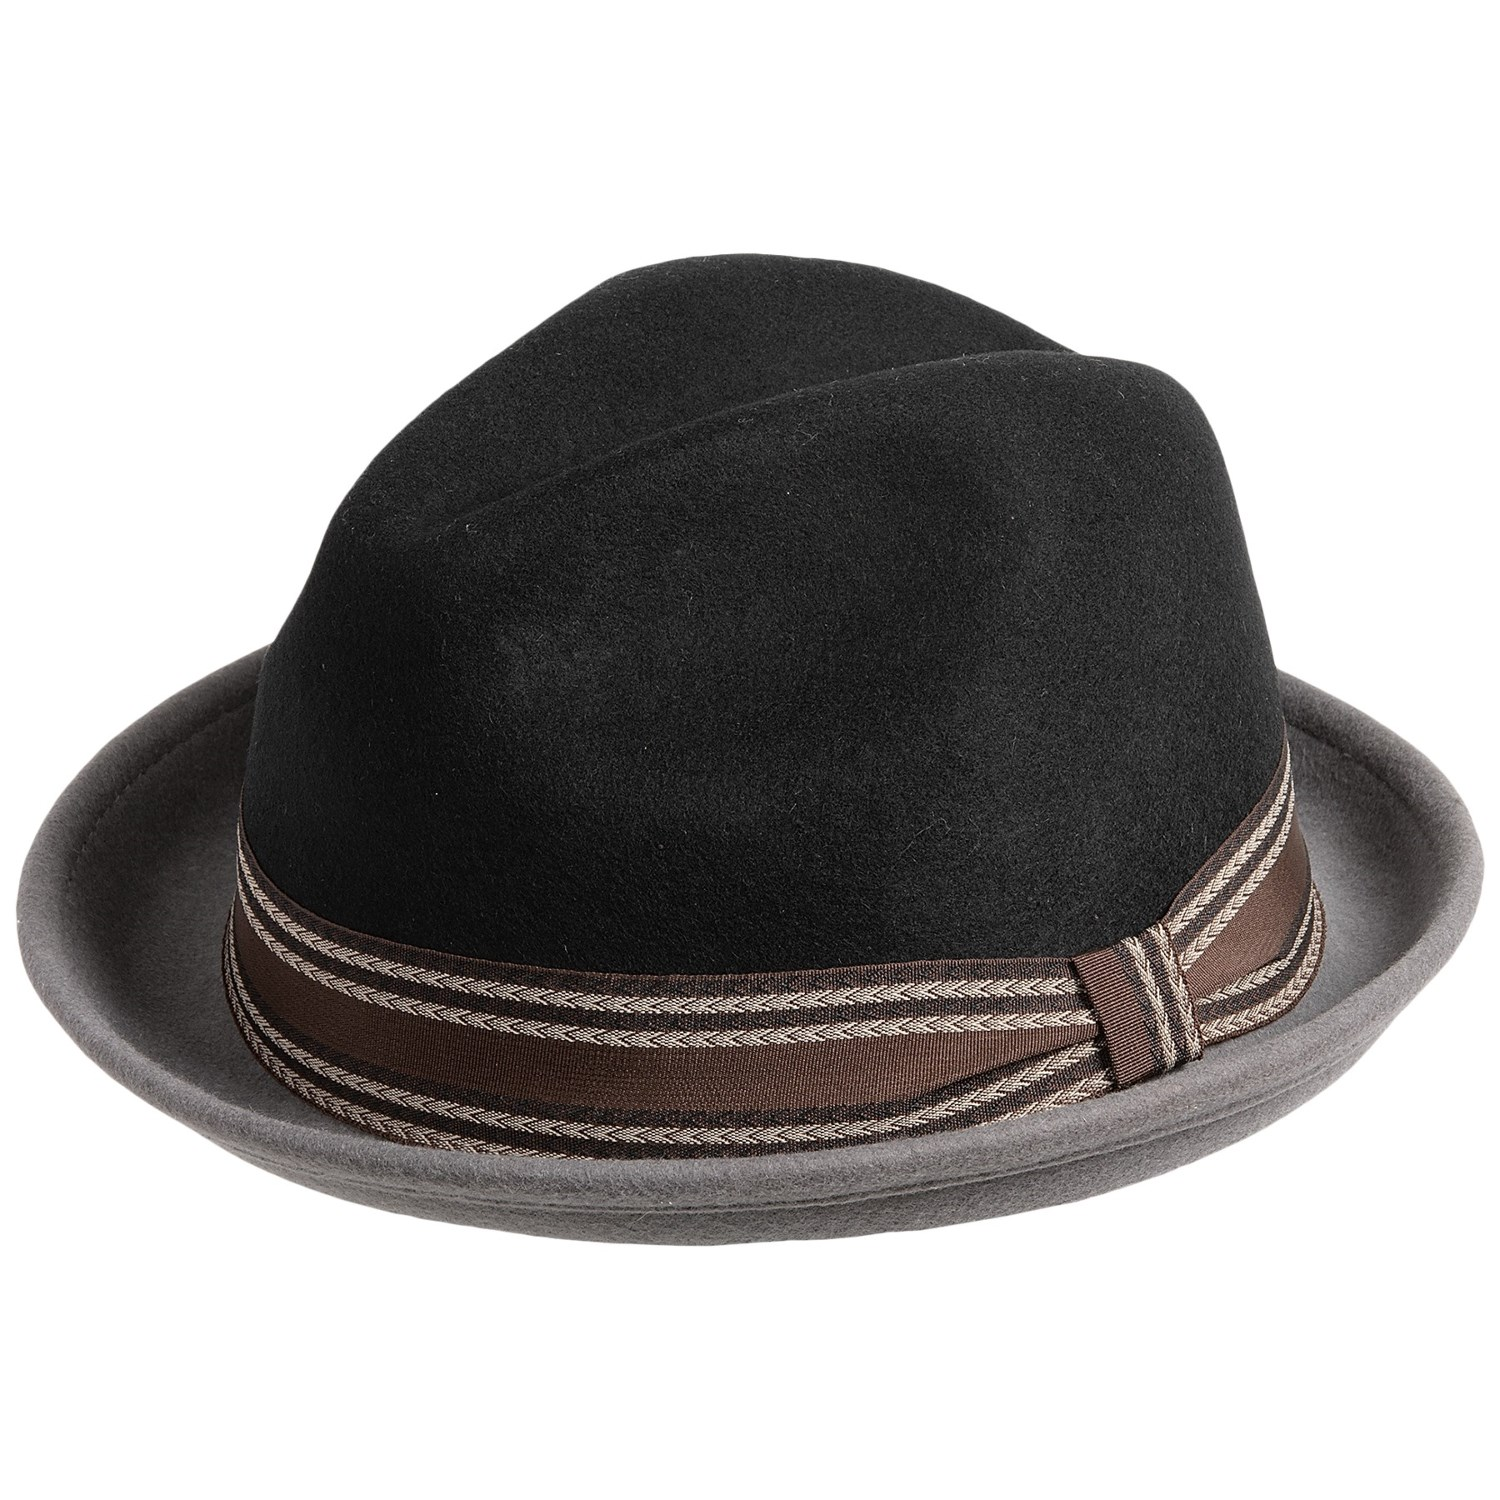 fedora hats for men bing images